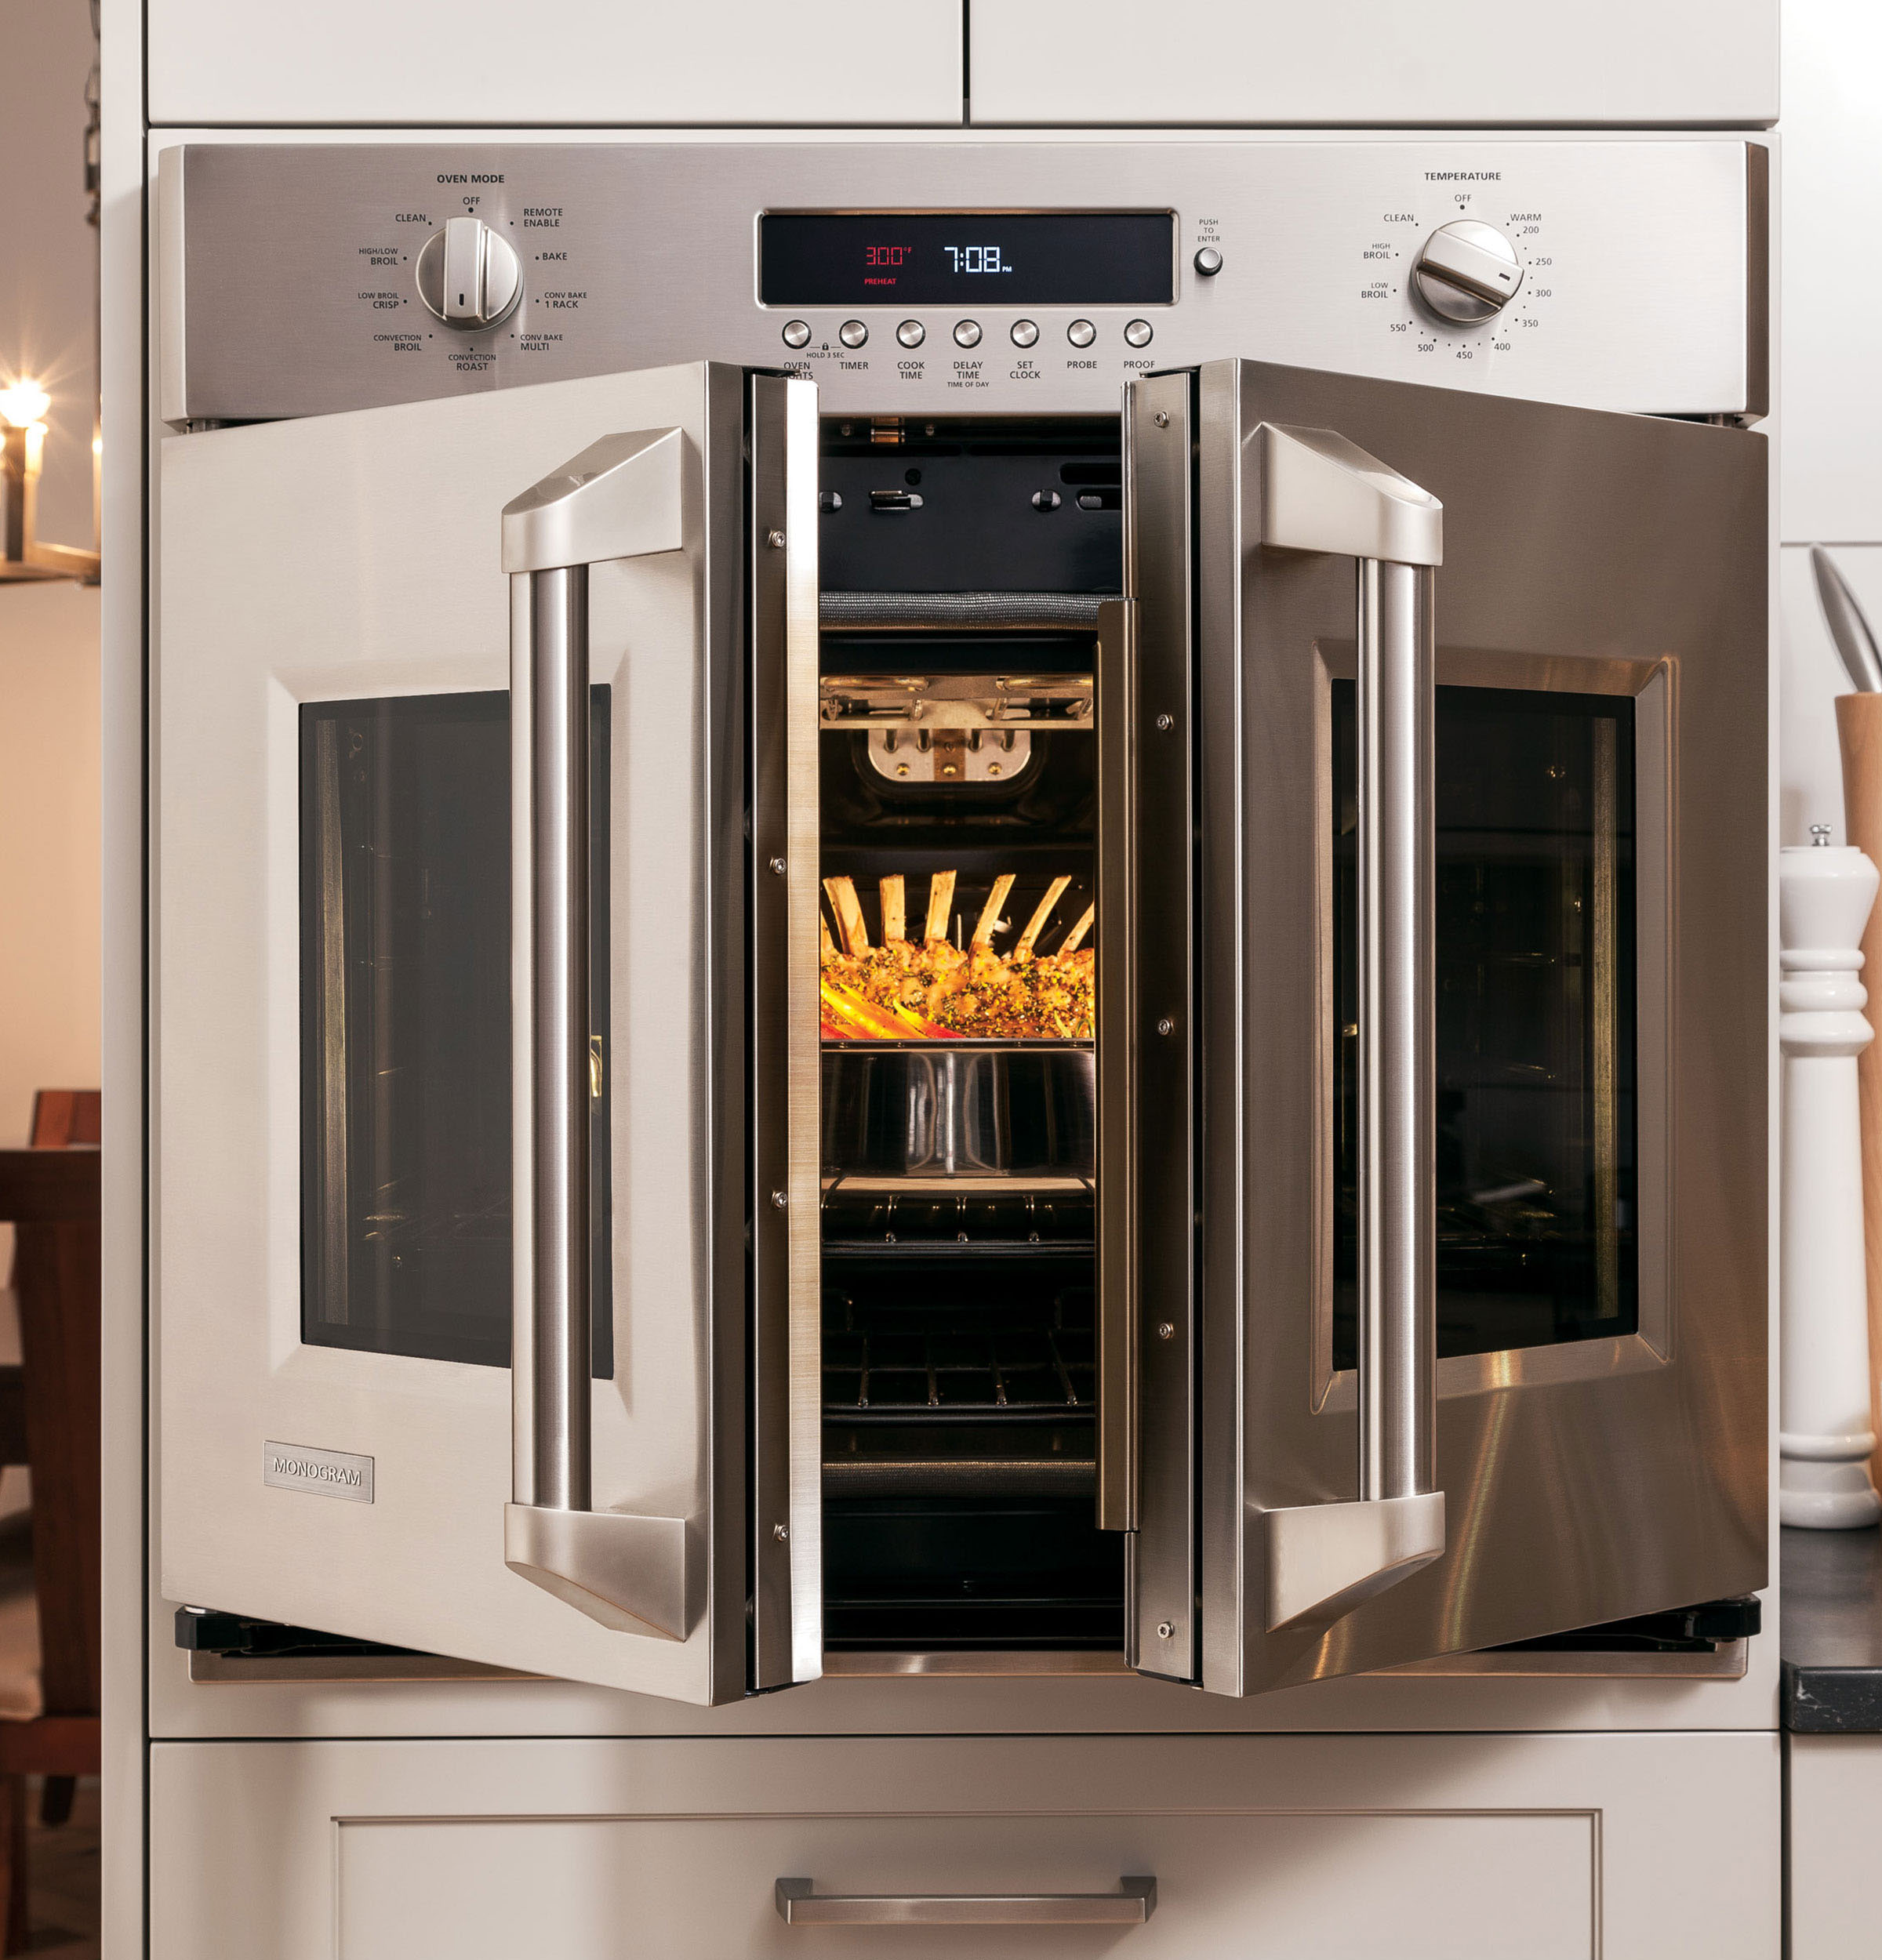 Kitchen With French Doors: French Door Ovens Opening Up Possibilities In The Kitchen